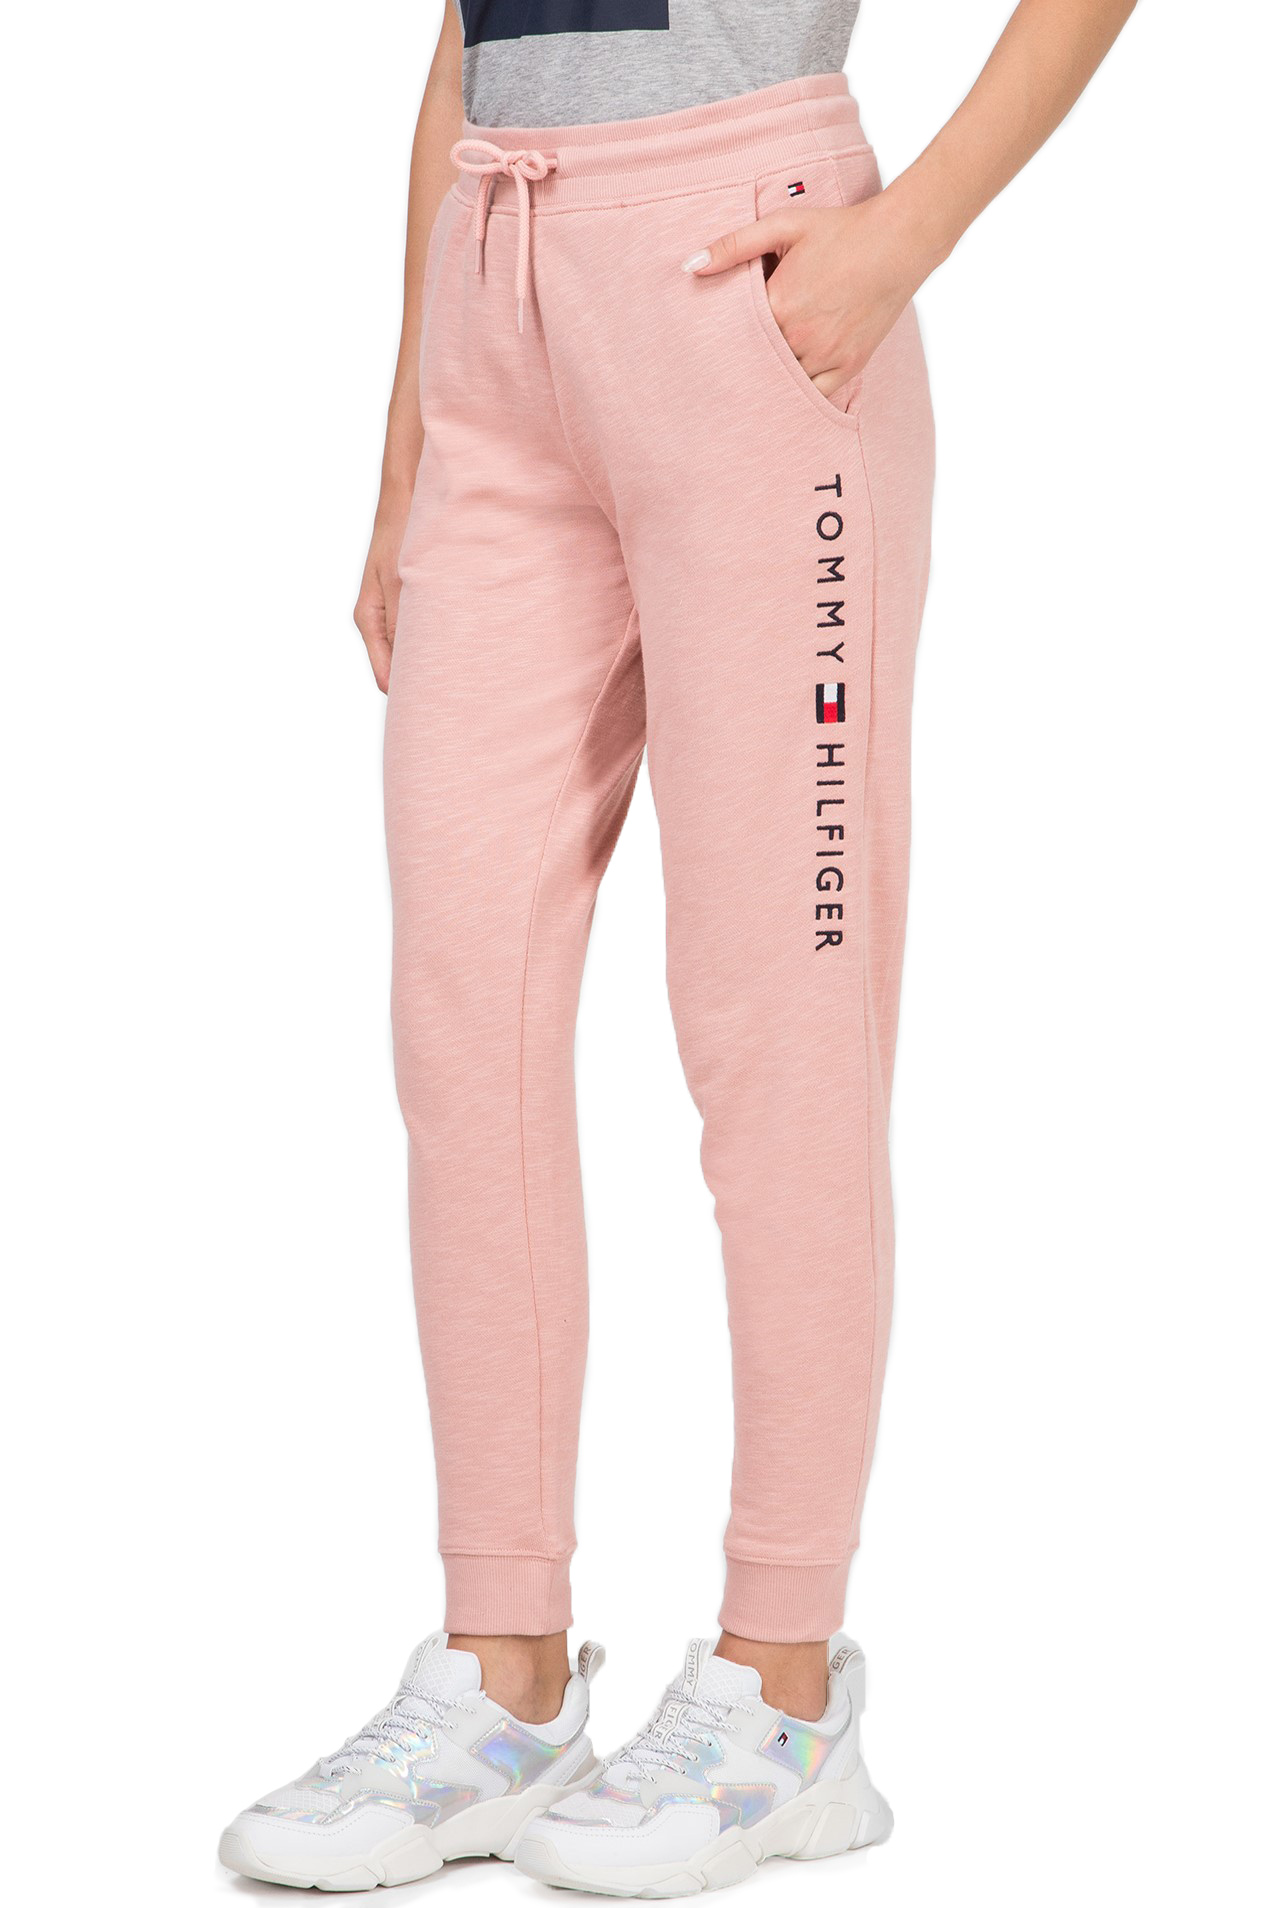 Tommy Hilfiger women´s tracksuit Cuffed Pant